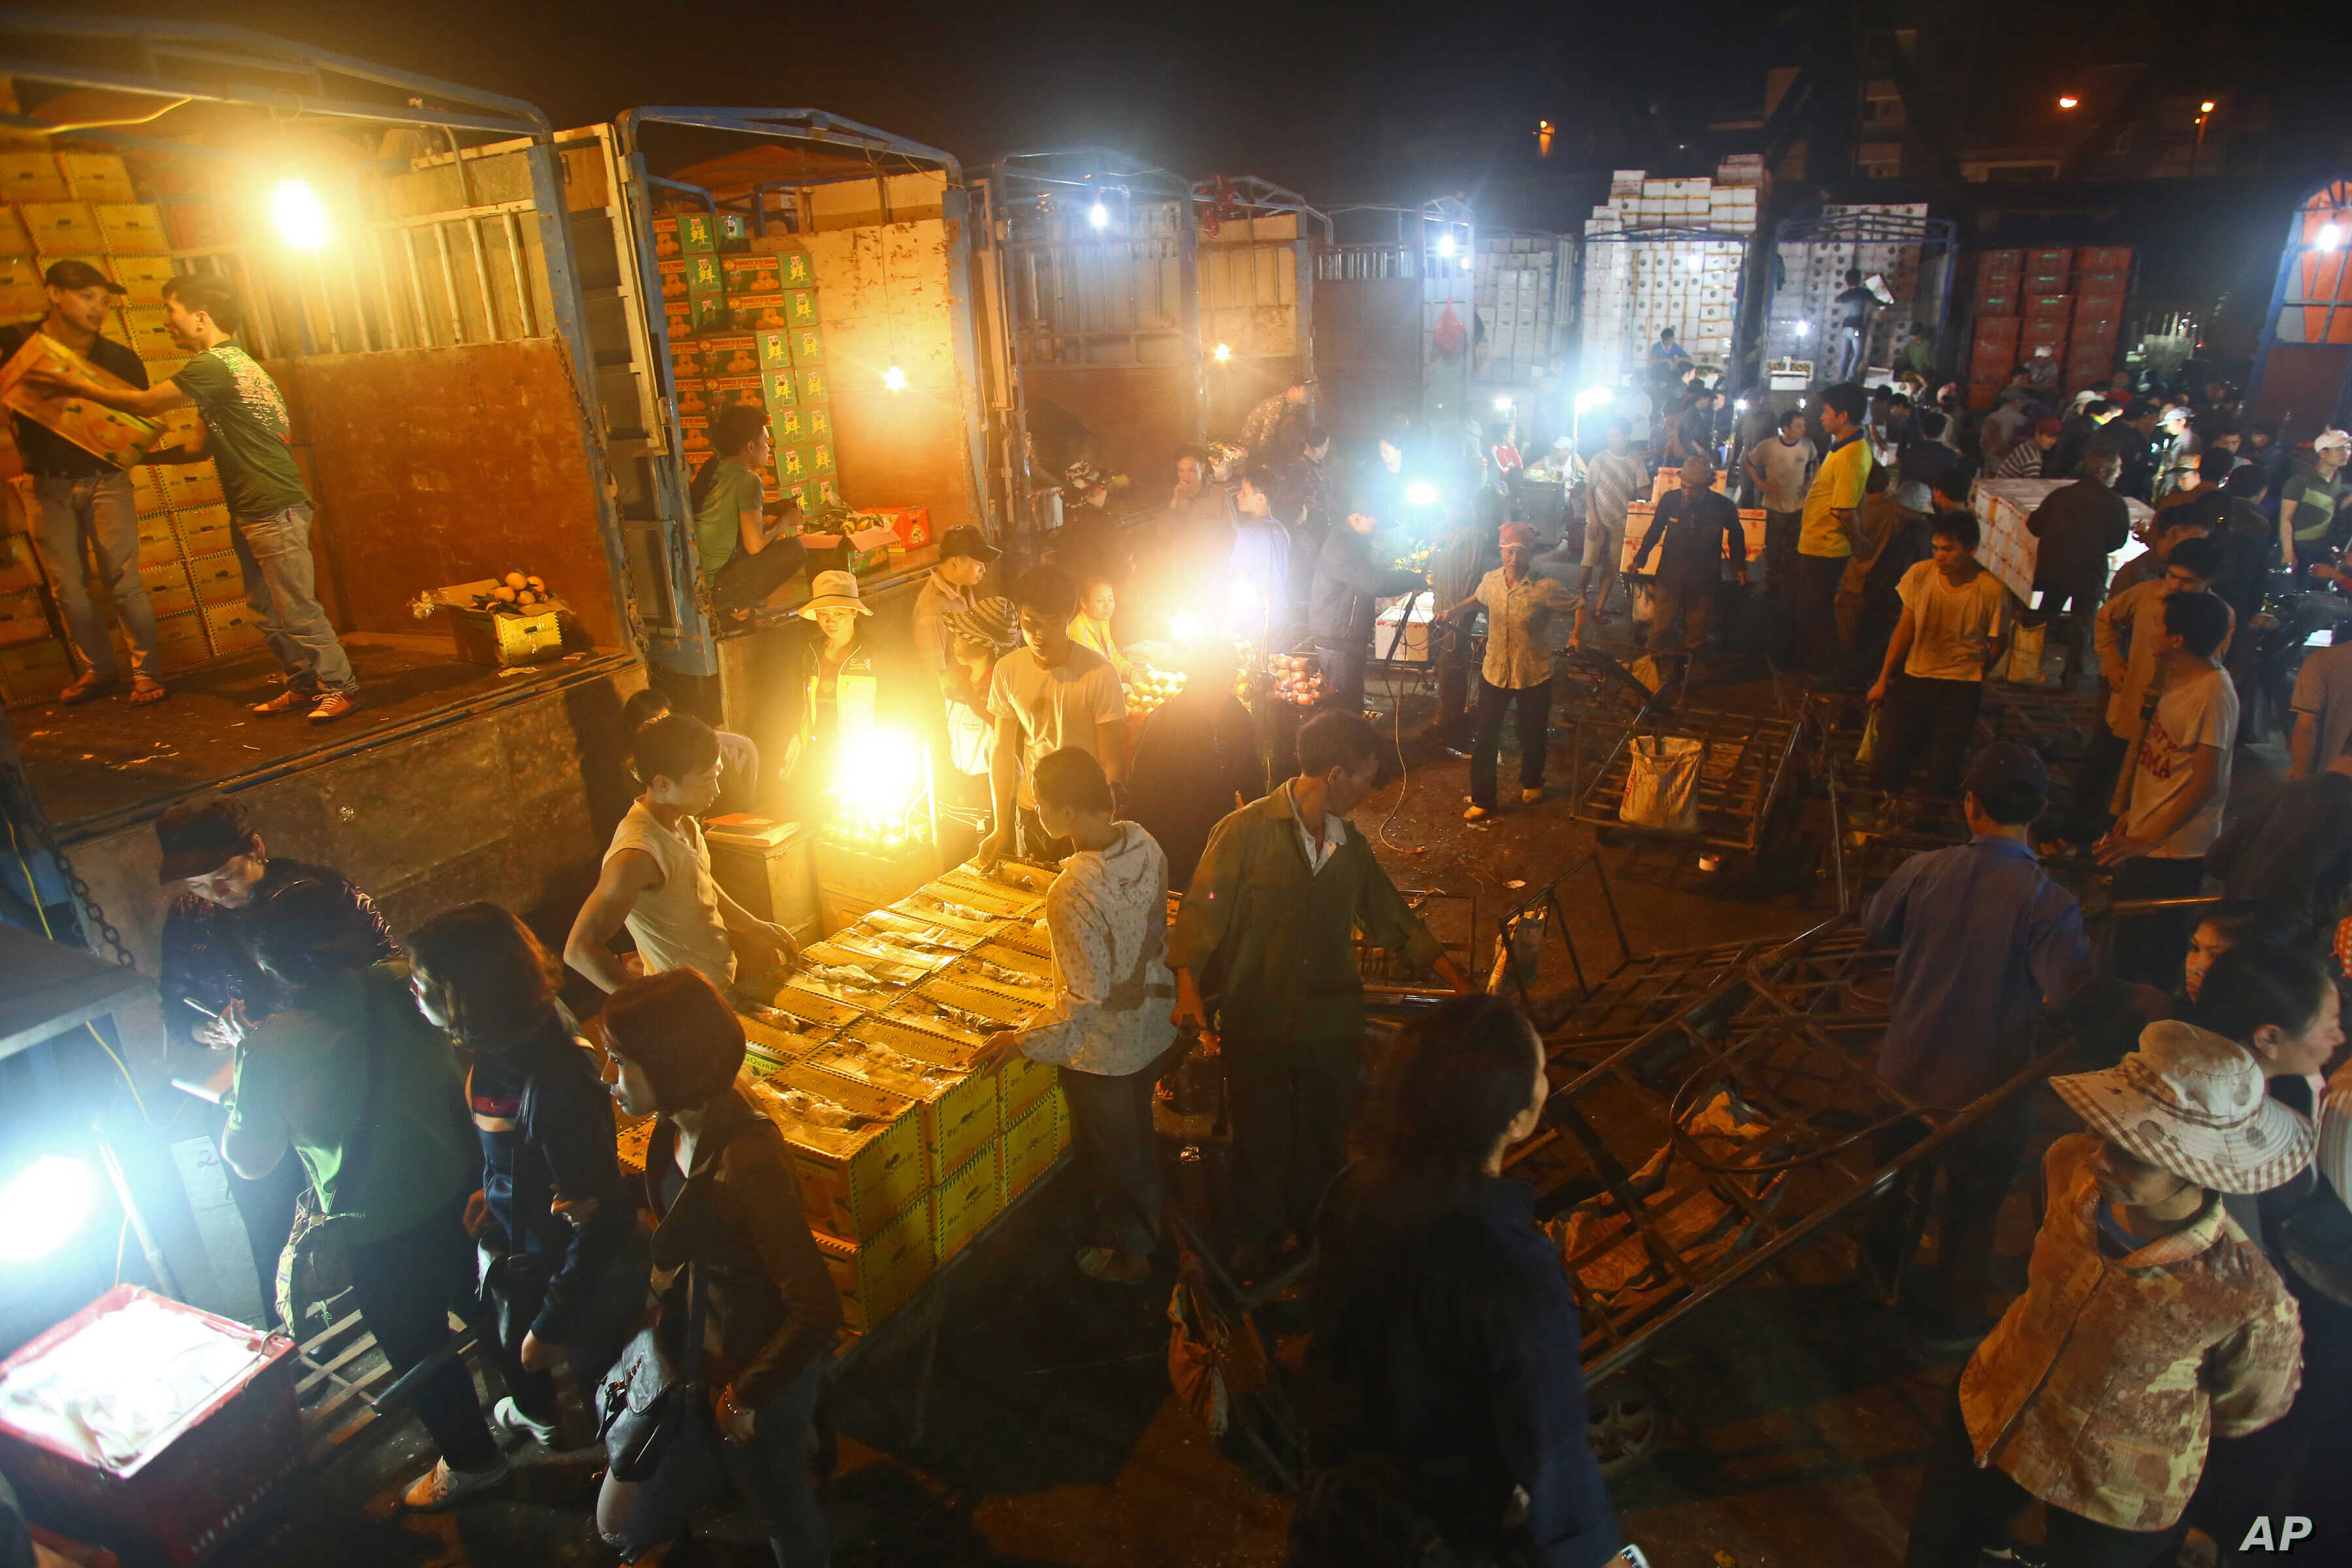 FILE - In this March 9, 2013 photo,  porters unload boxes of Chinese fruits near traders at Long Bien wholesale market for fruits and vegetables in Hanoi, Vietnam.